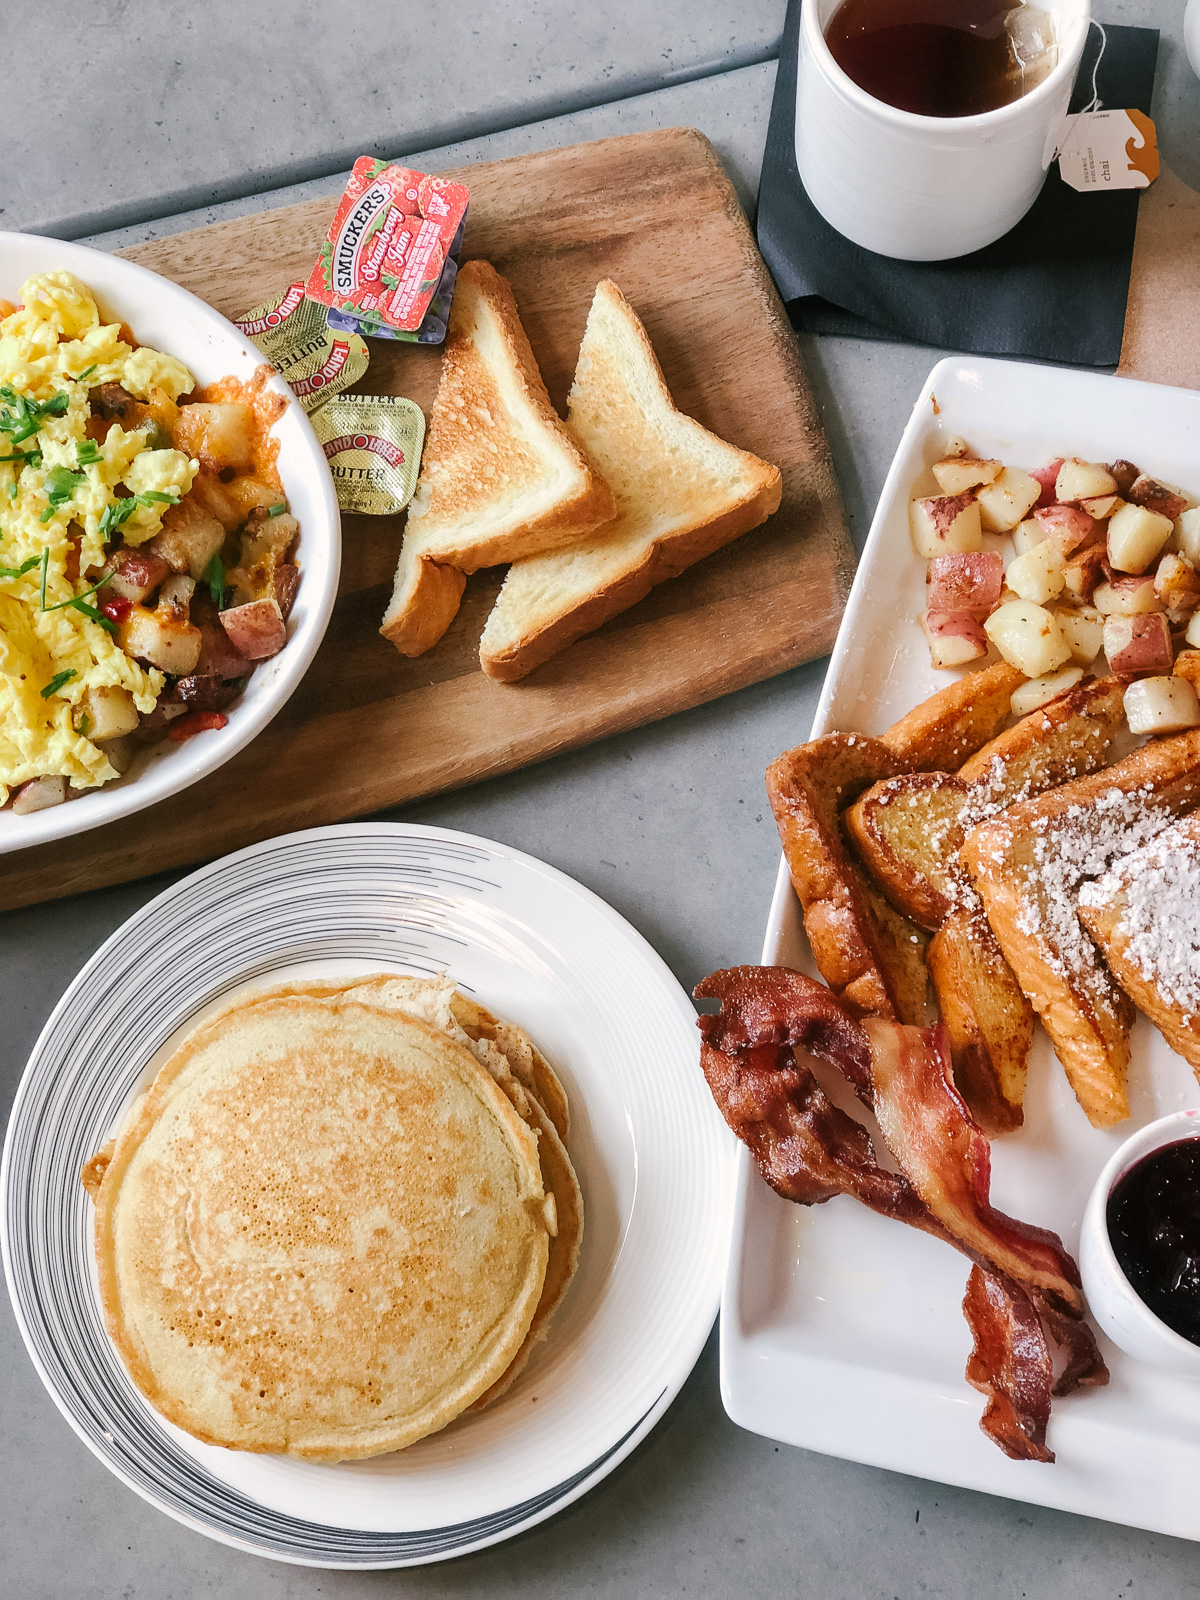 Hilton Garden Inn Annapolis Downtown breakfast | Don't miss the full Annapolis Weekend Guide: where to eat, what to do, and where to stay! | bylaurenm.com